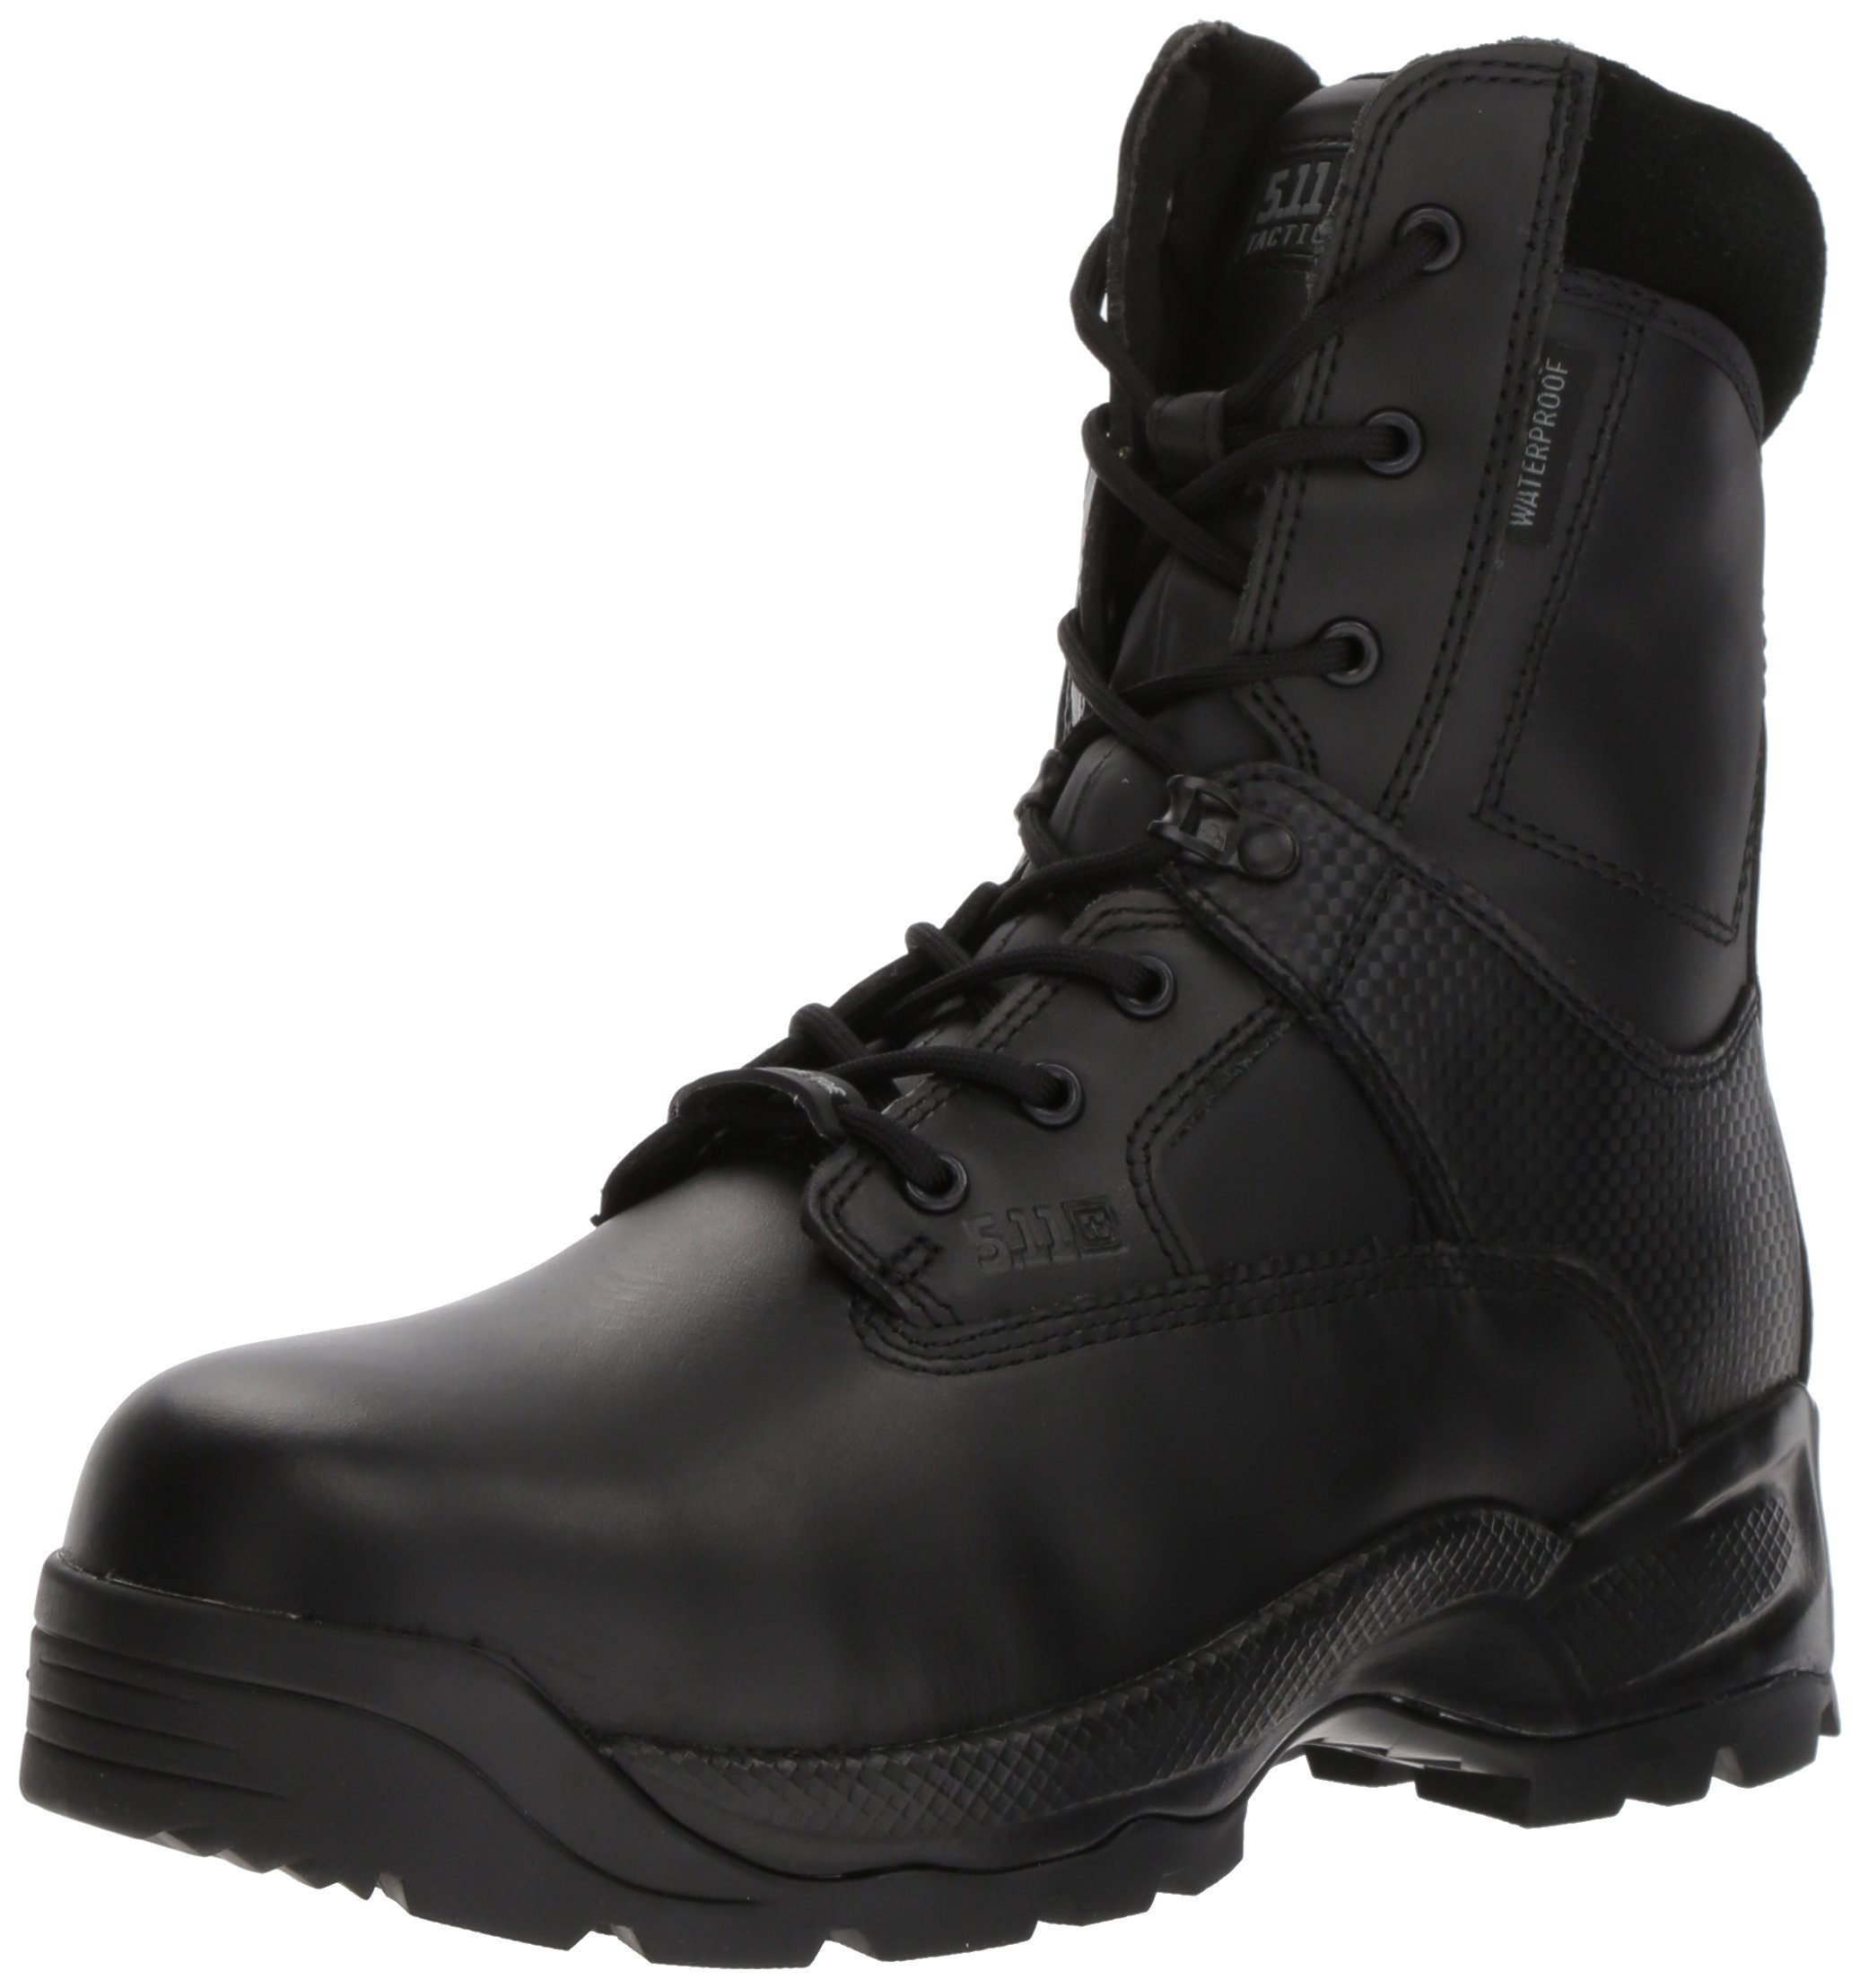 5.11 Tactical Men's A.T.A.C. Shield 8 Inch Side Zip Boot, Black, 7 W US by 5.11